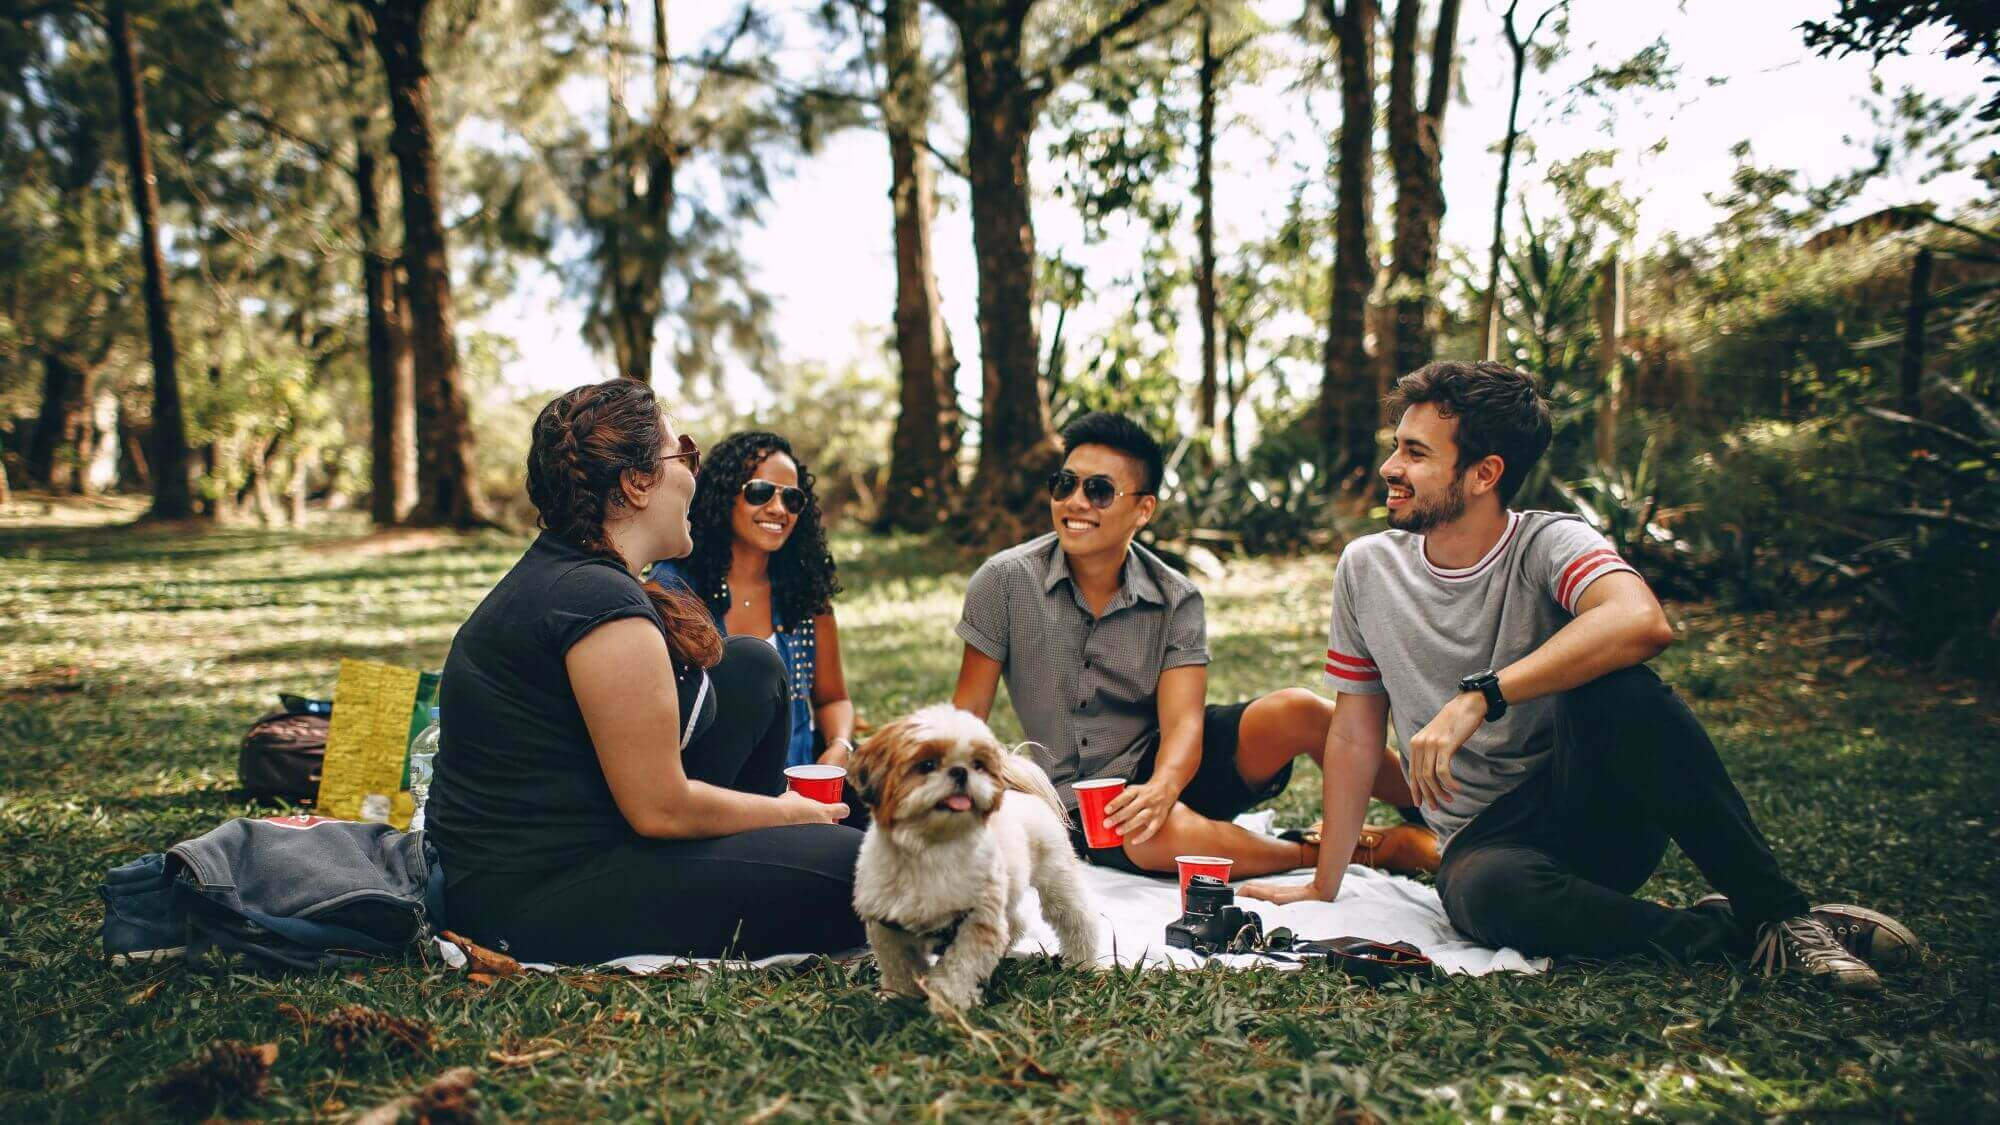 group of friends at picnic with dog in park